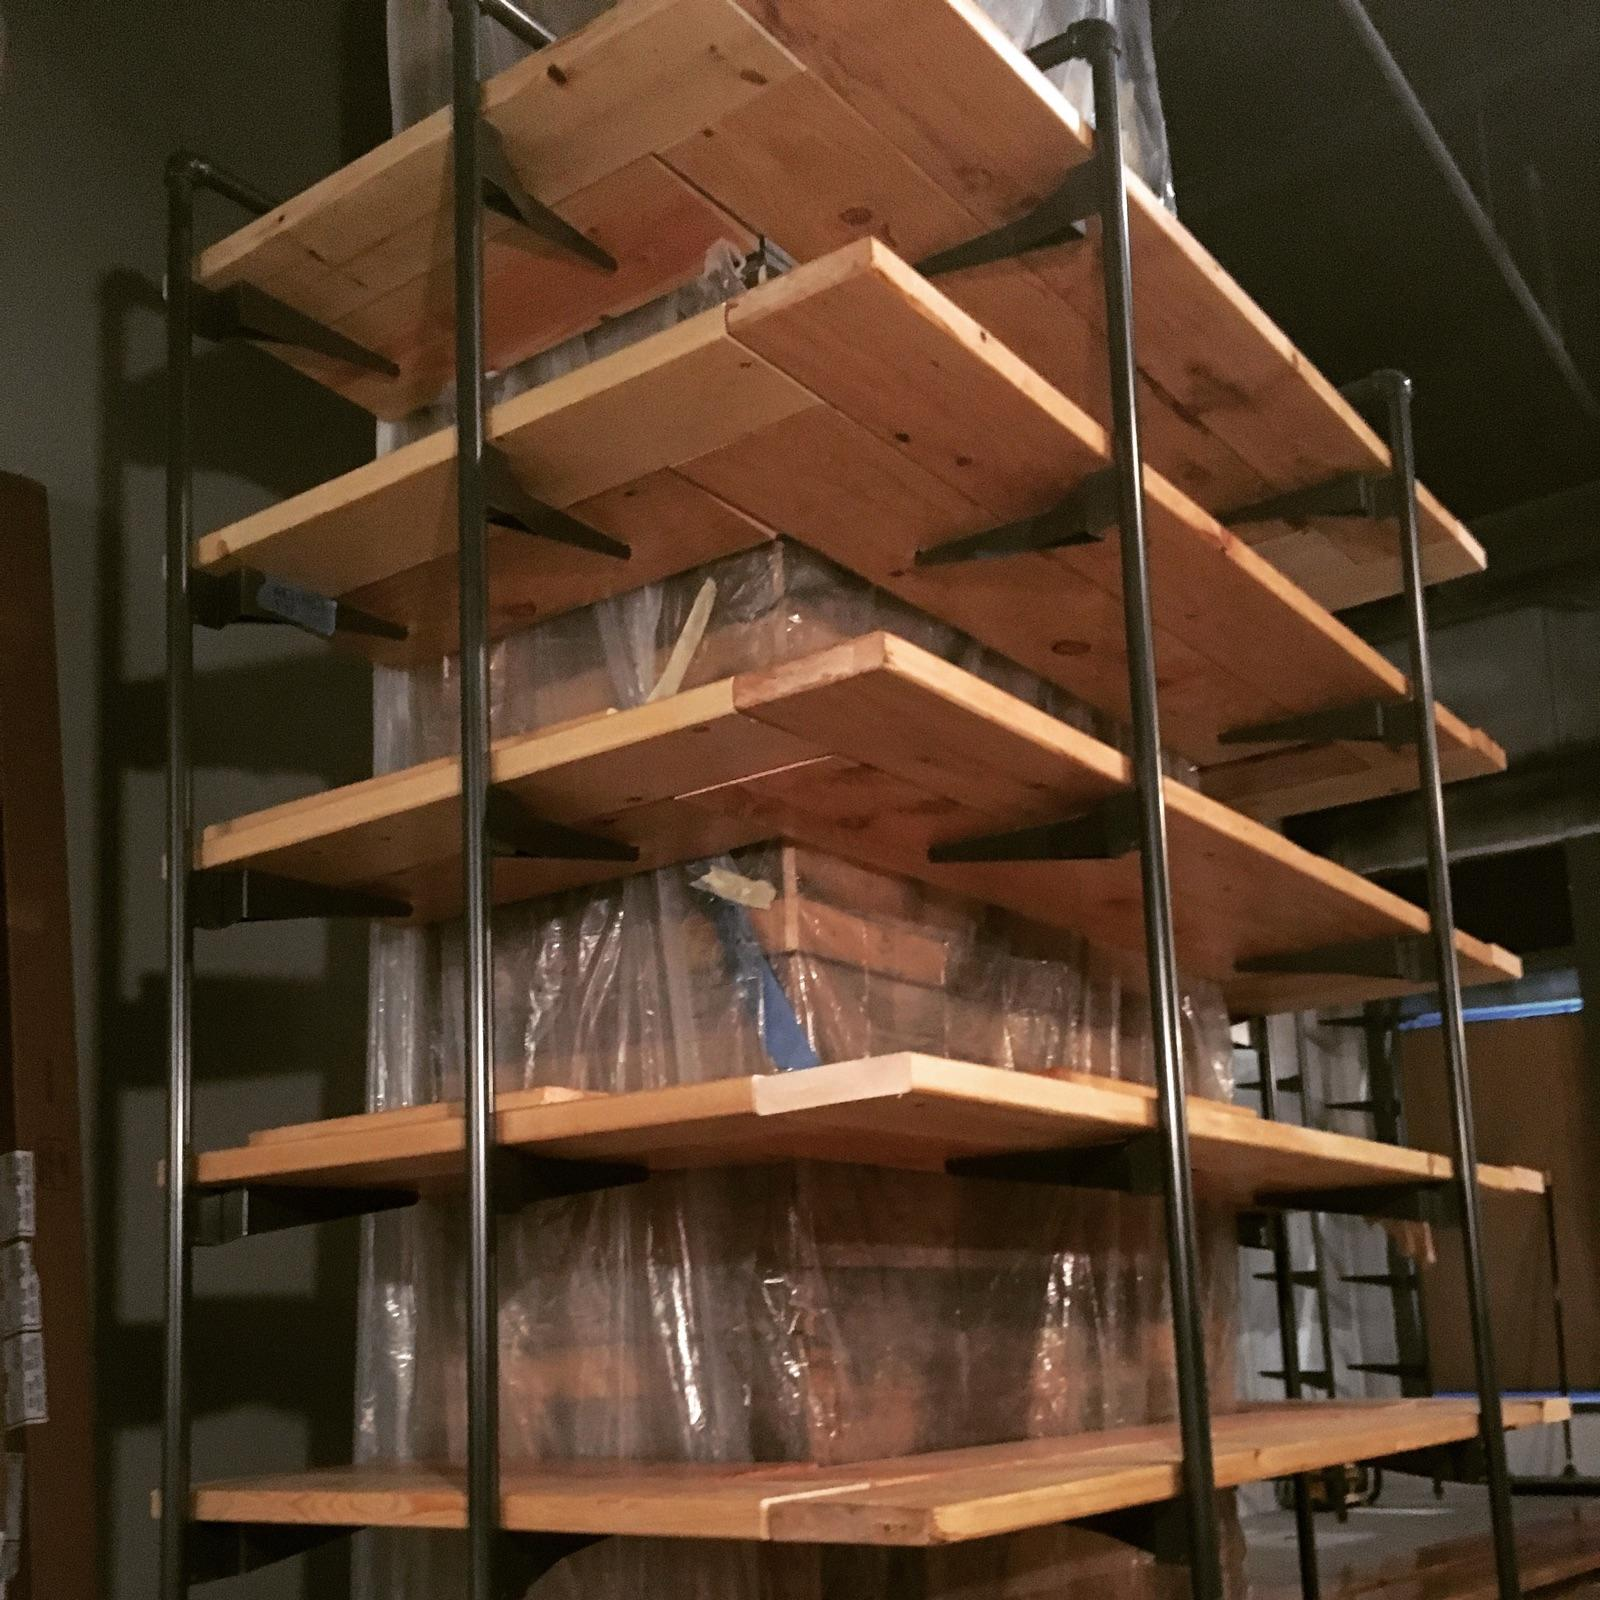 Shelving set into the outrigger pipe system